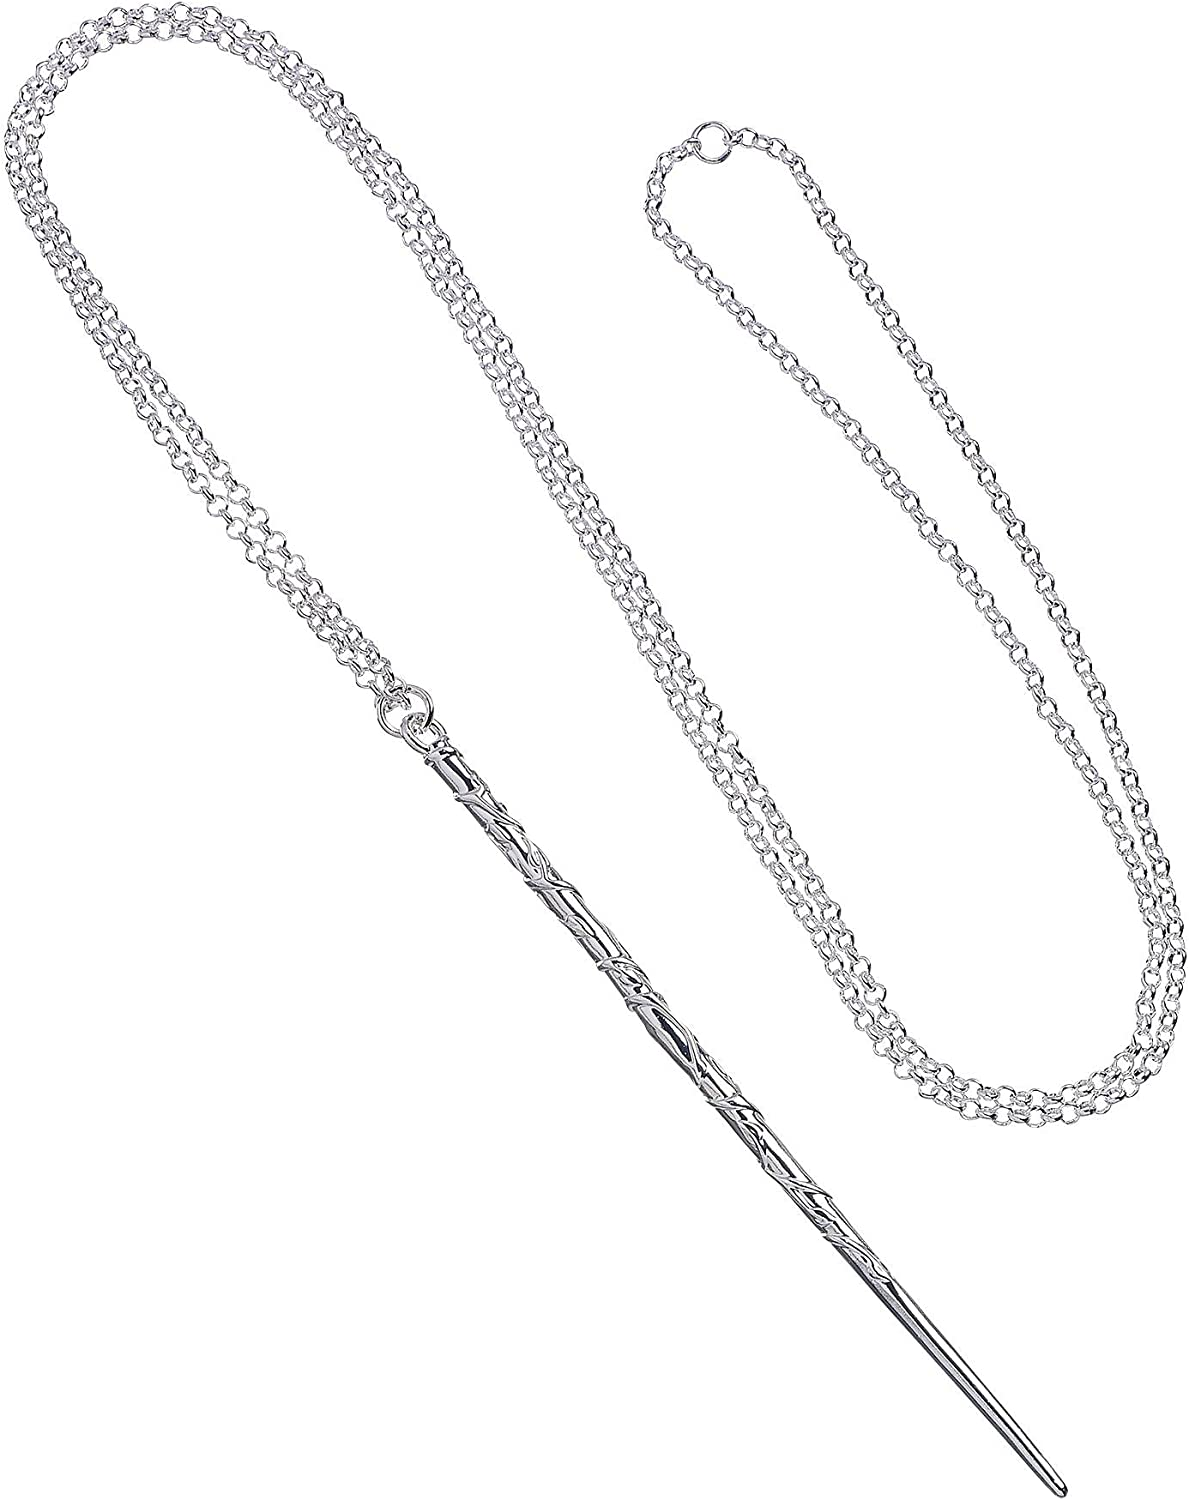 New Official Harry Potter Silver Plated Wand Necklace in Ollivander/'s Gift Box